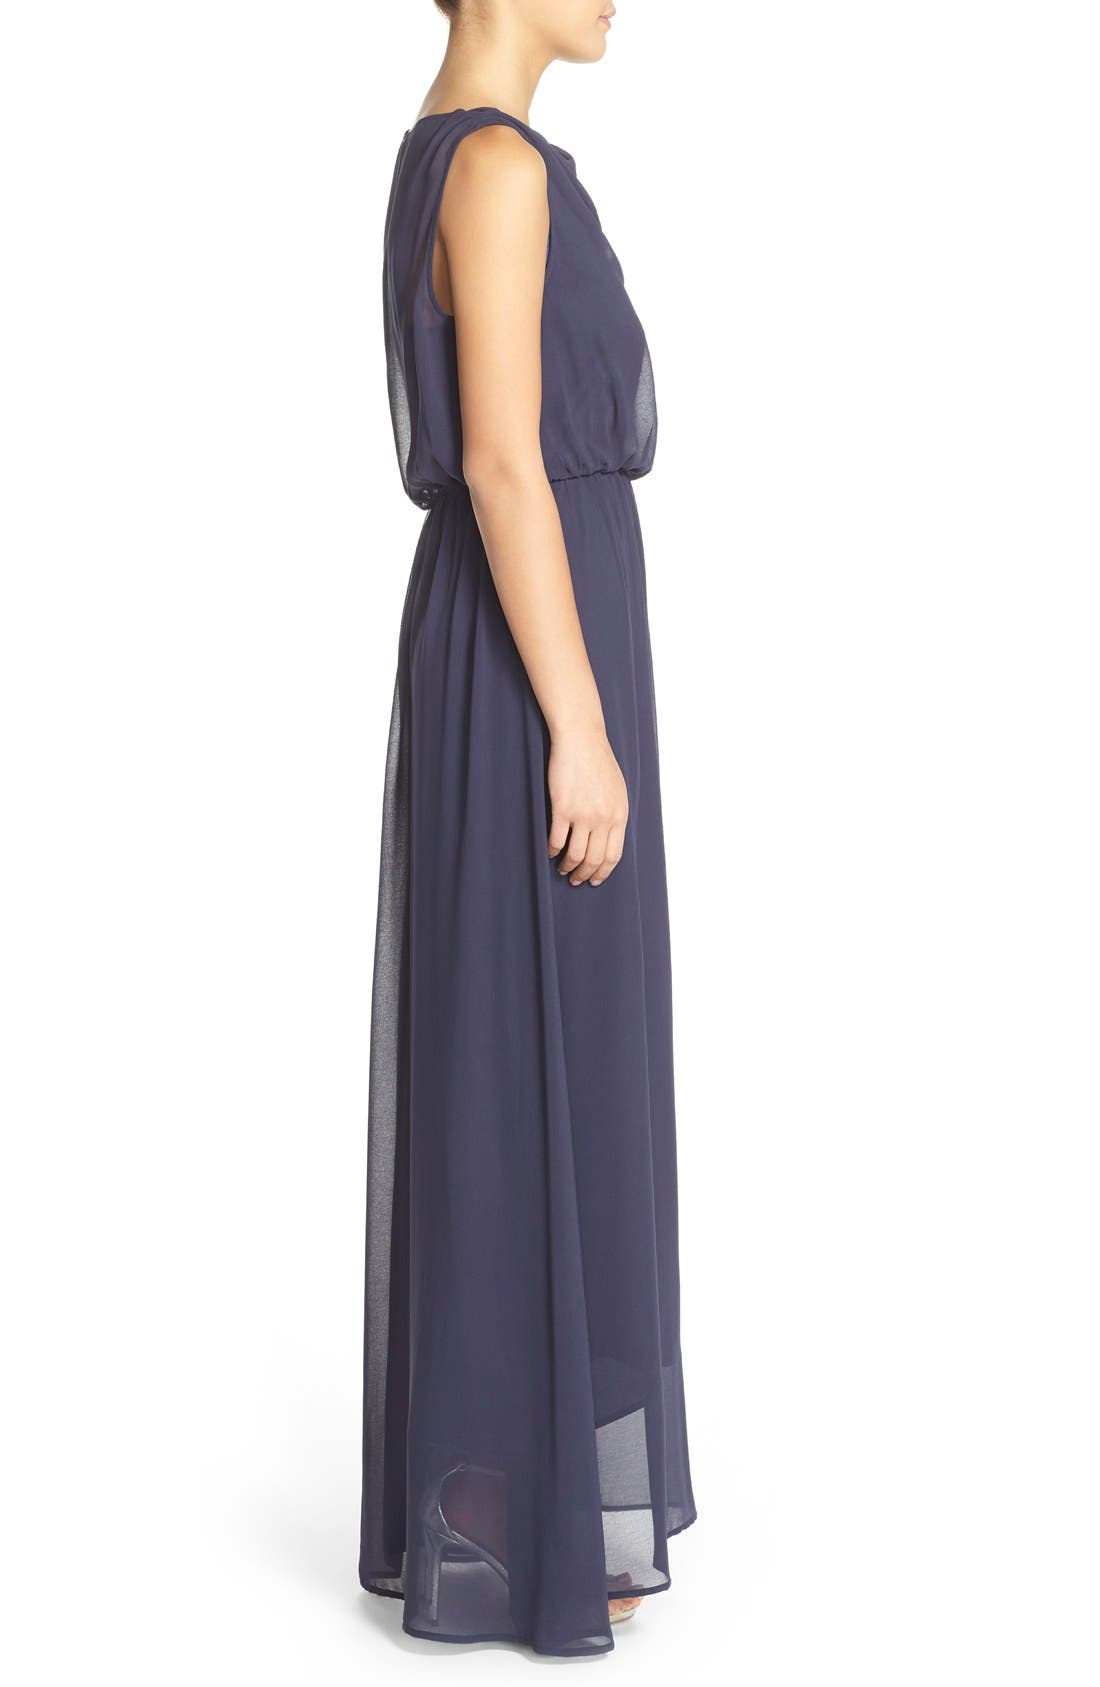 by Lauren Conrad 'Springfield' Cowl Neck Chiffon Gown,                             Alternate thumbnail 3, color,                             410